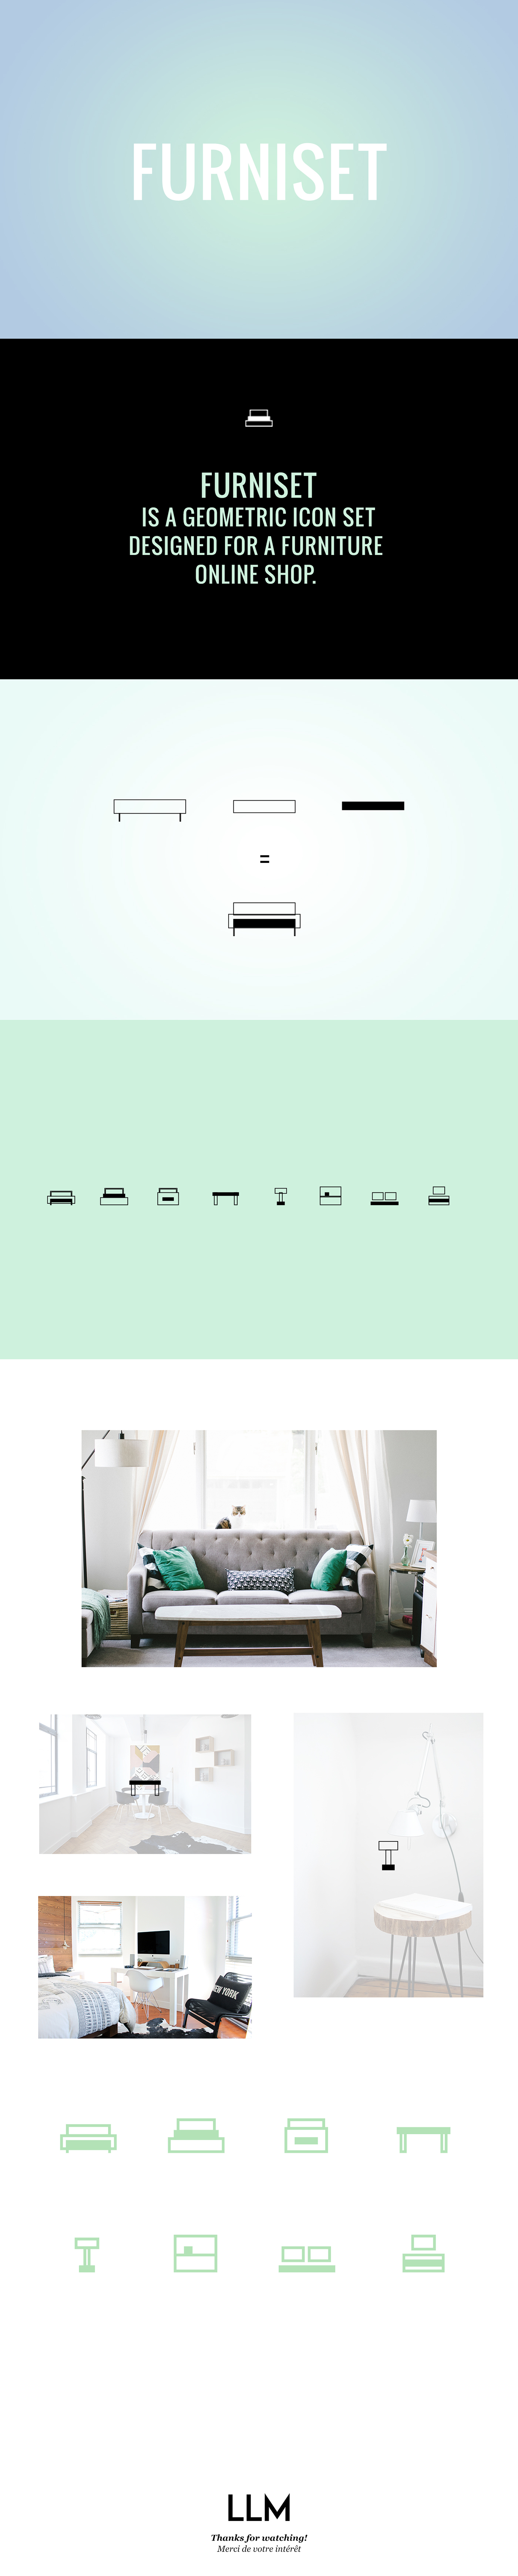 Furniset   Icons for furniture shop ecommerce